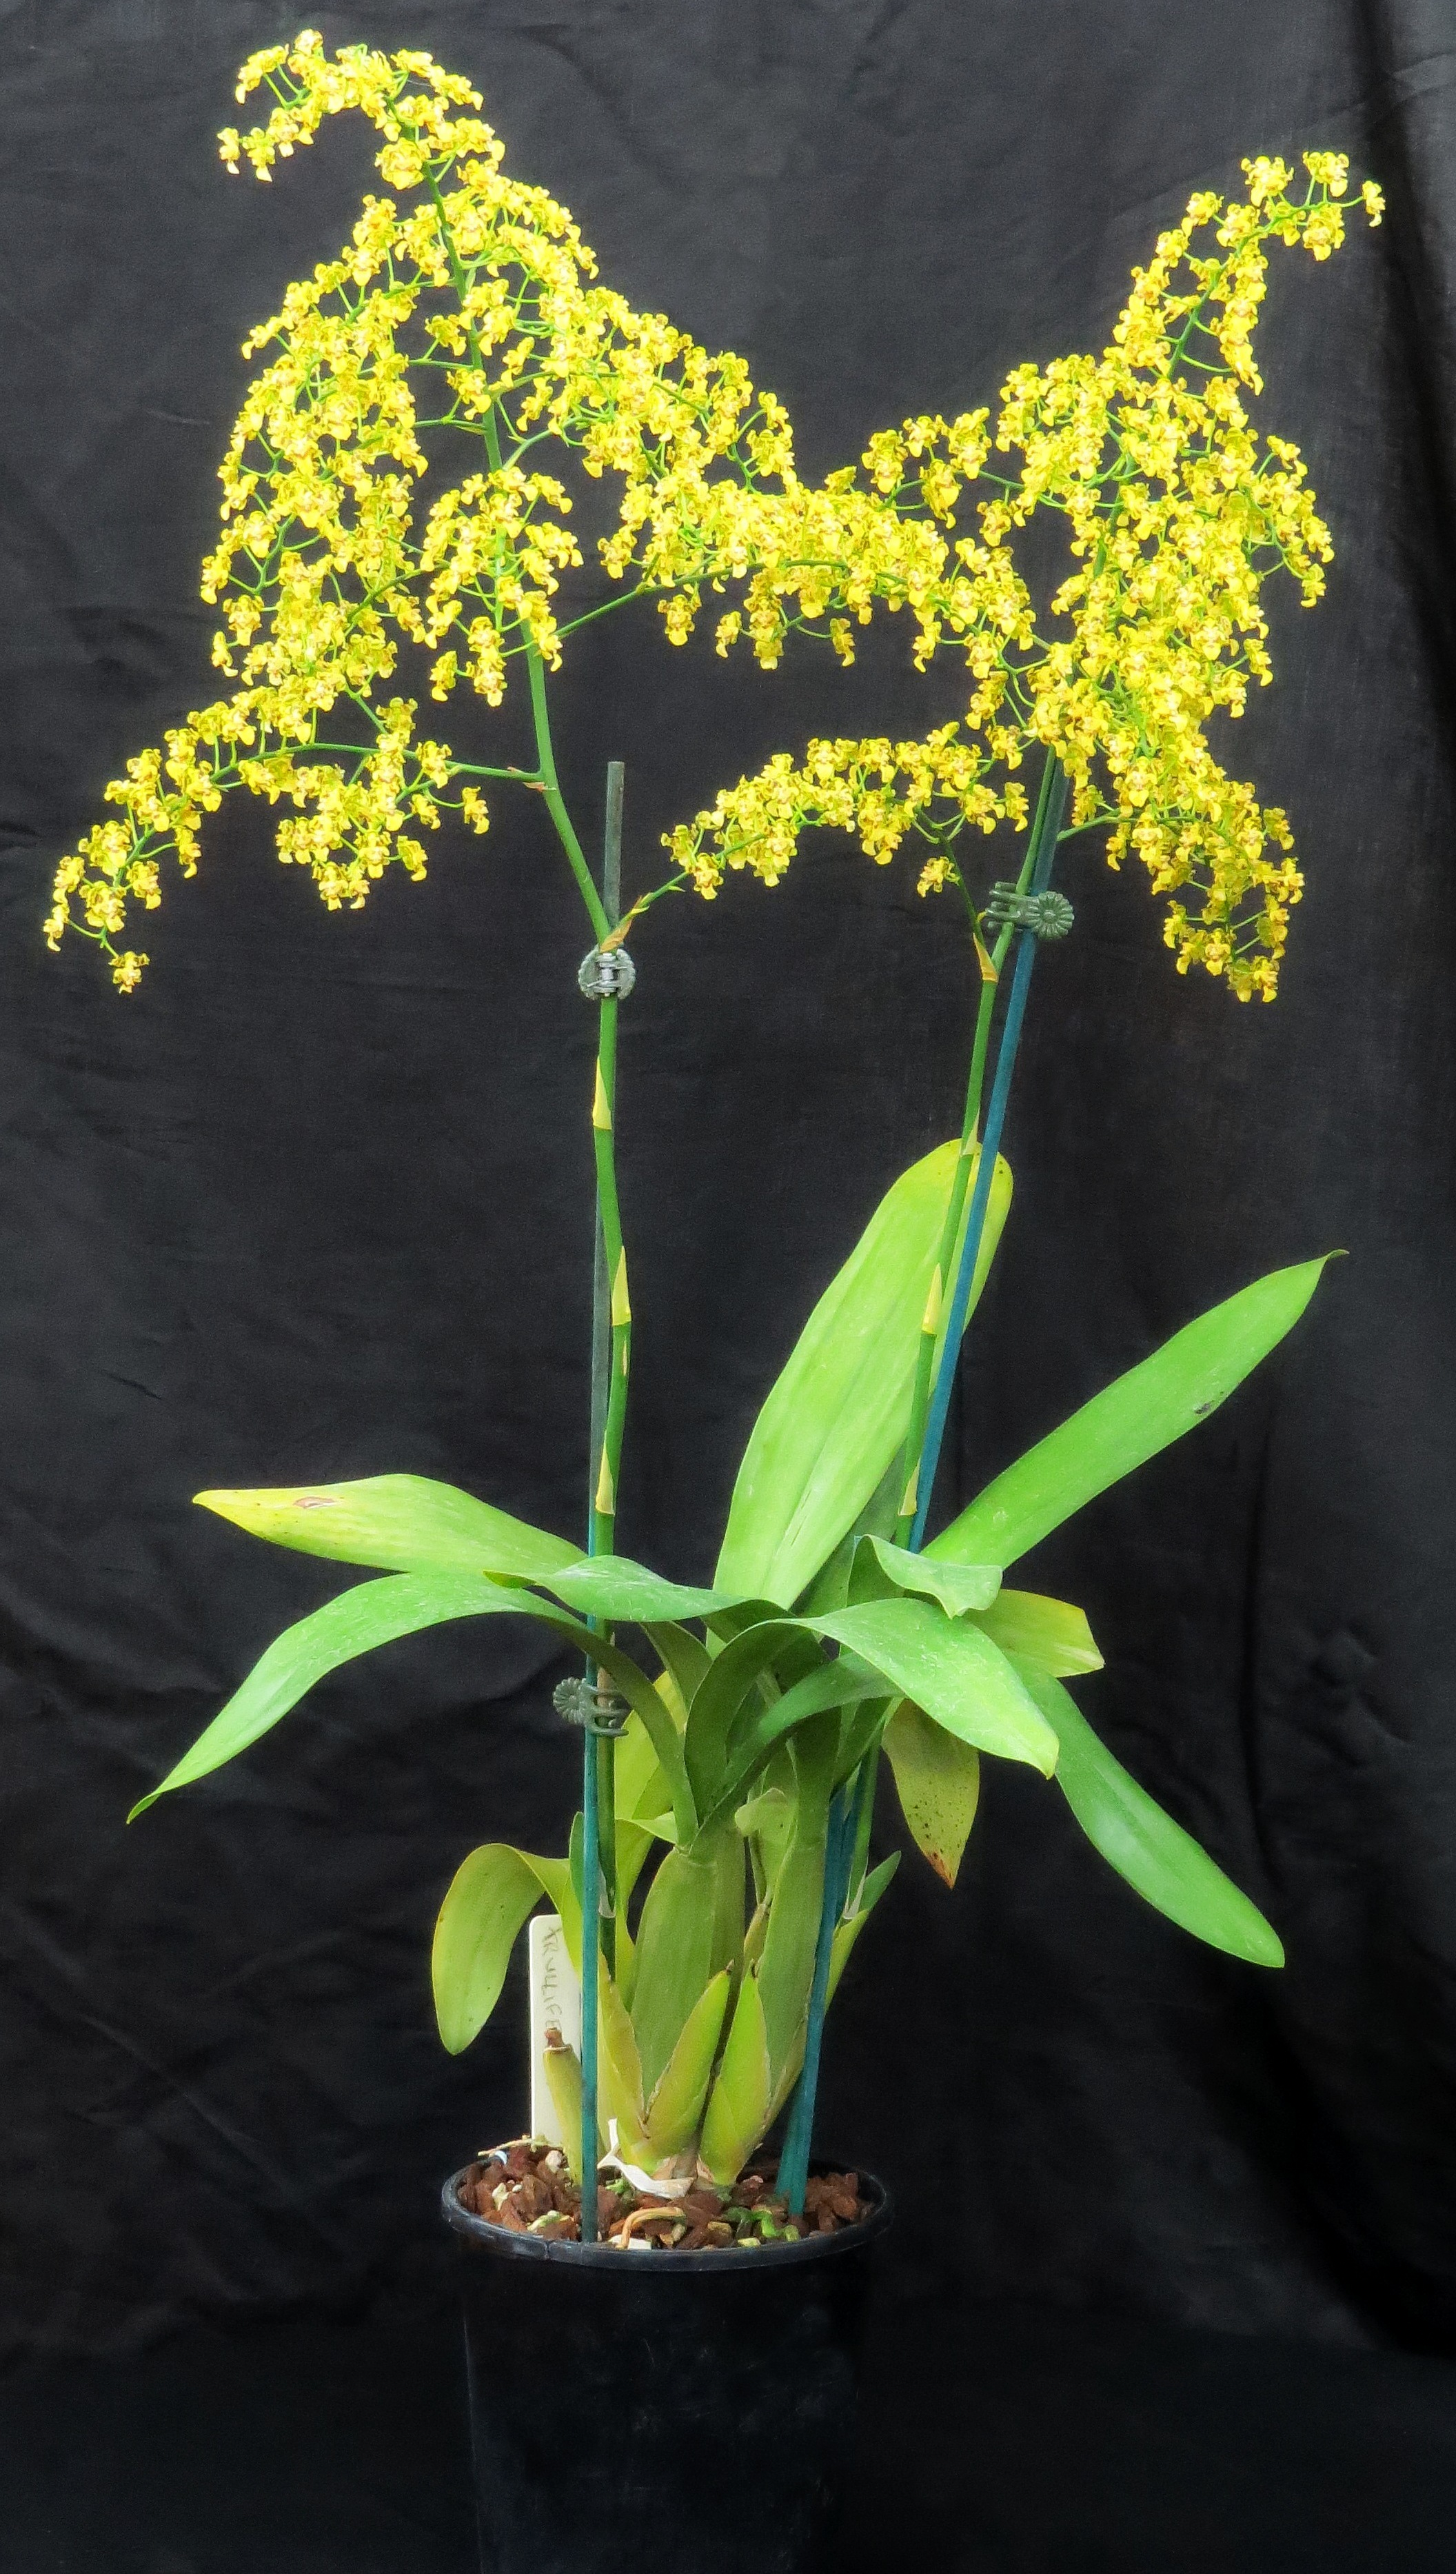 2016-019 Onc. trulliferum 'Christy' CCC 80 Owner C & J Christensen Photo S Simson OCNZ